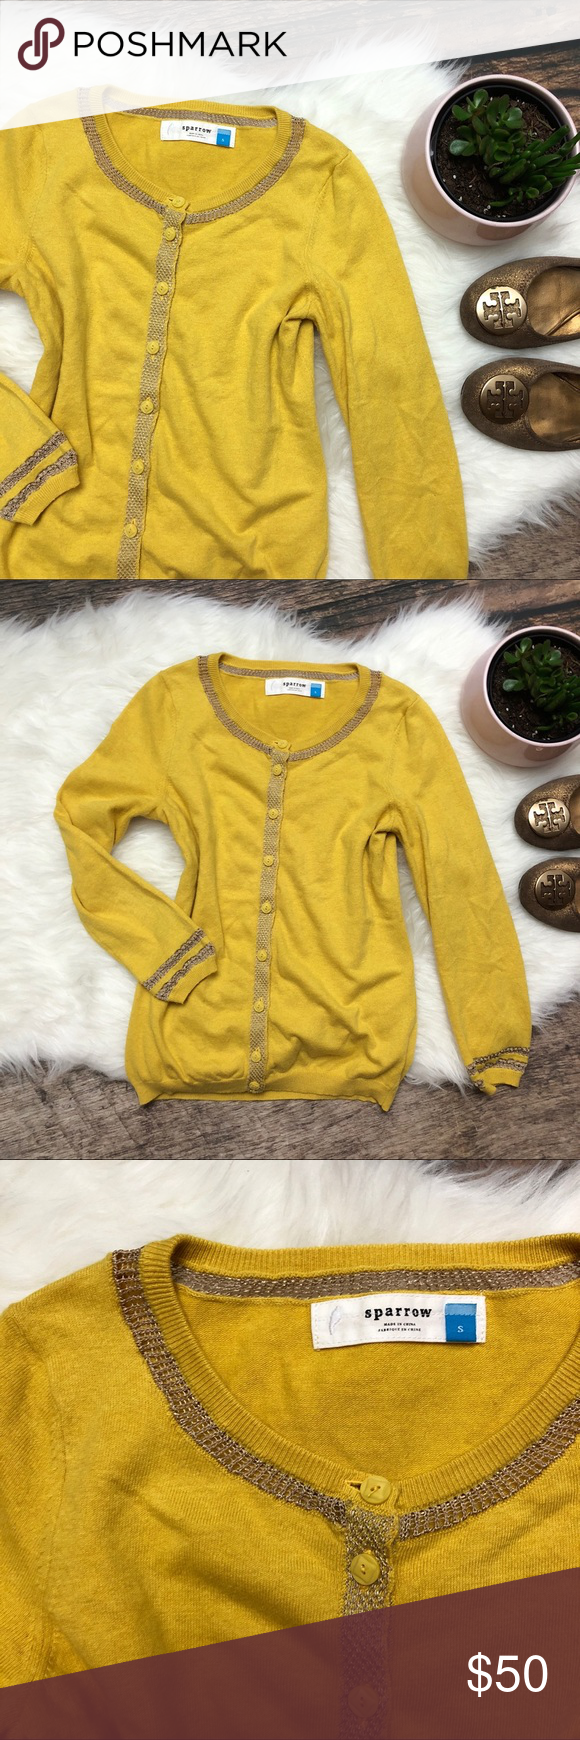 ANTHROPOLOGIE Yellow Gold Cardigan Sweater | Gold cardigan, Yellow ...